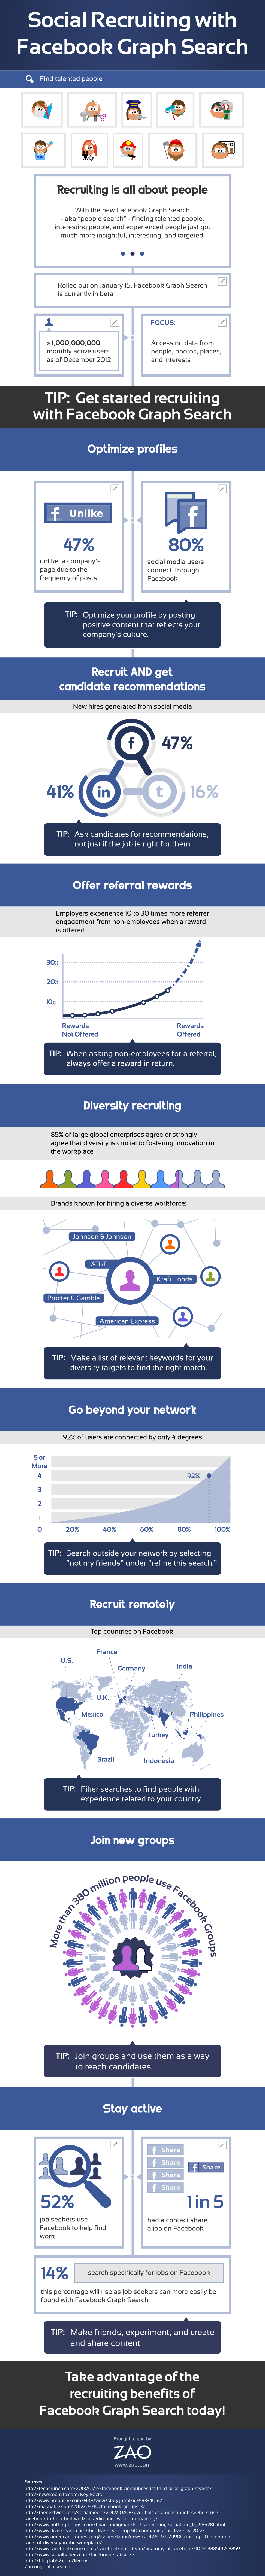 How to Recruit with Facebook Graph Search [INFOGRAPHIC]